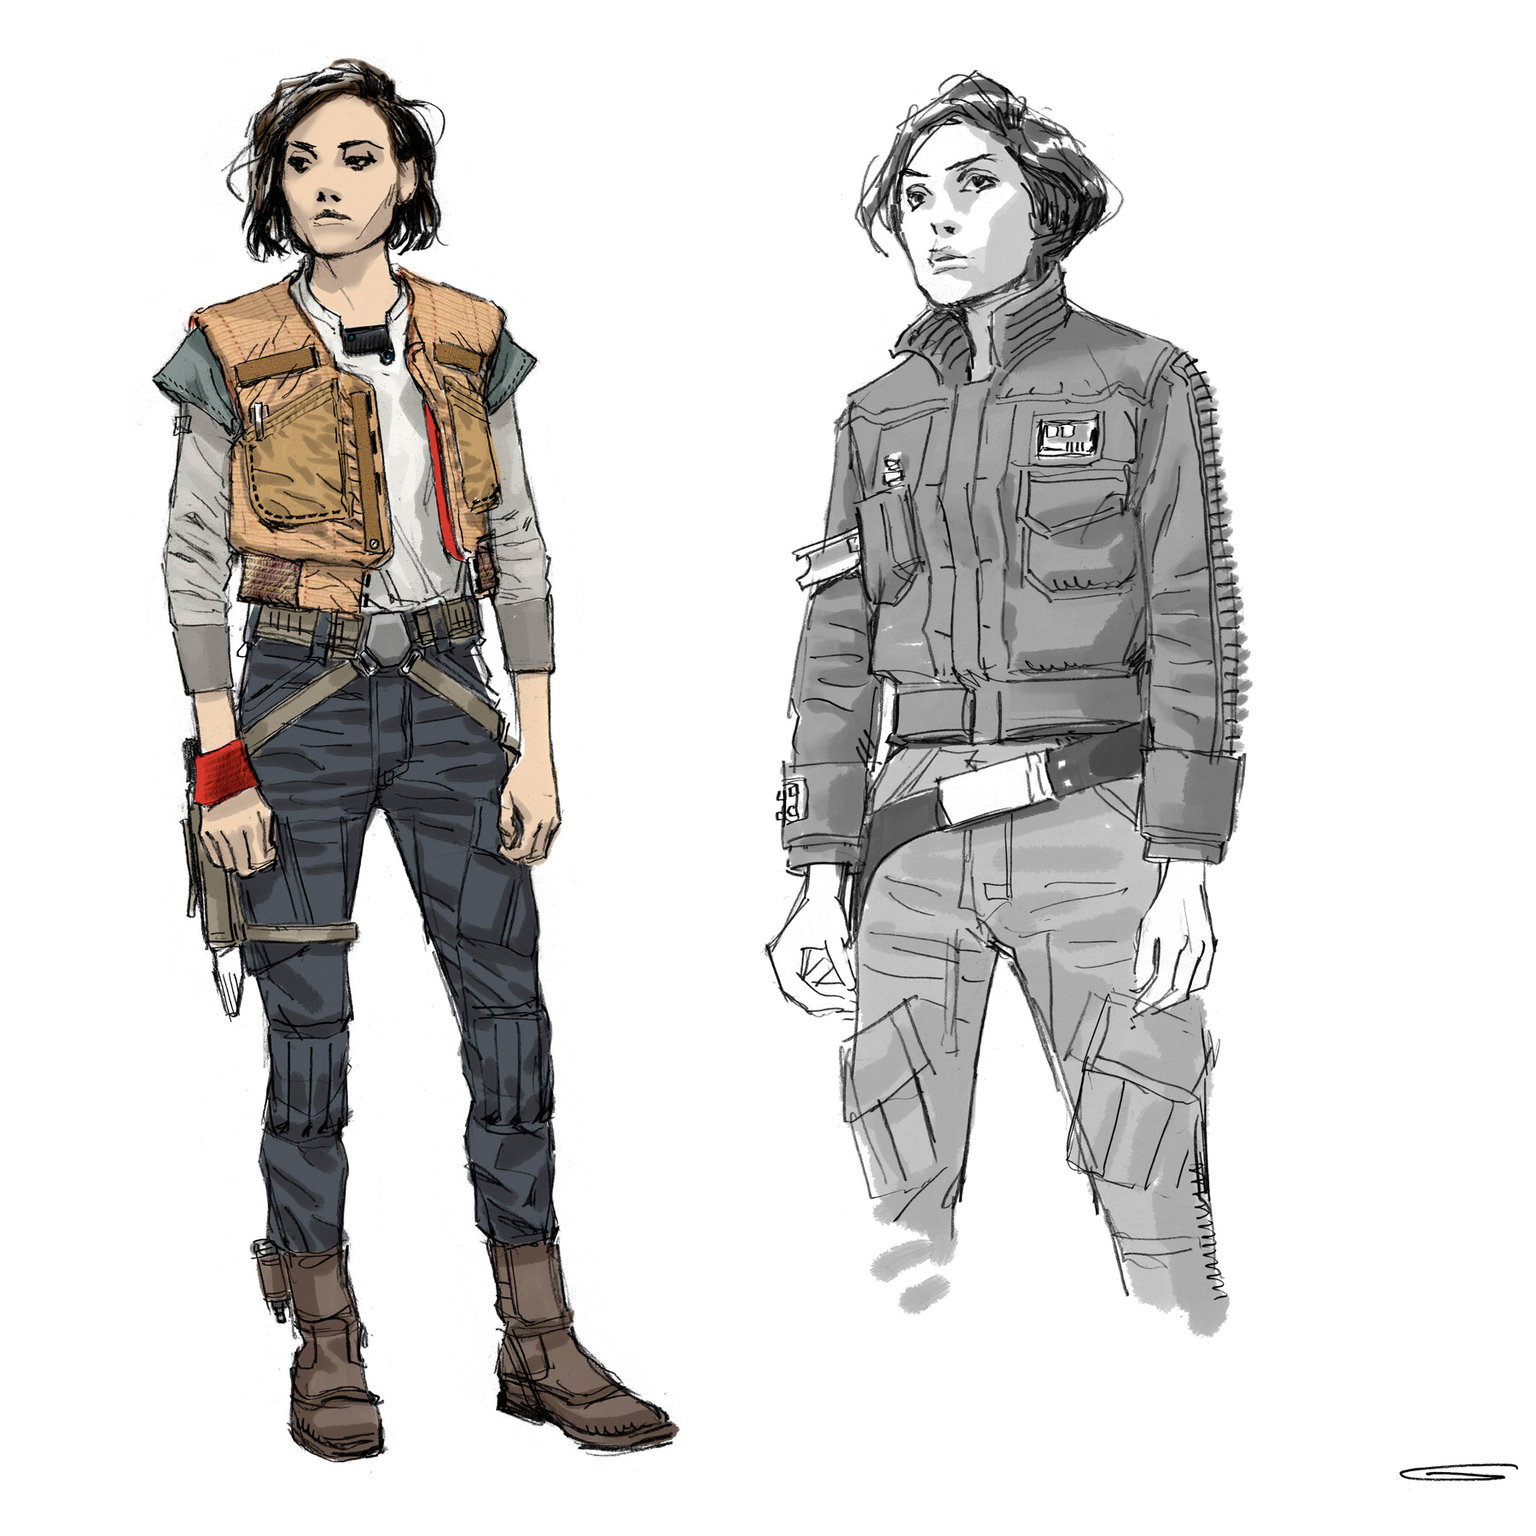 All images © Abrams Books, 2016(C). 2016 Lucasfilm Ltd. Disney. And TM. All Rights Reserved.